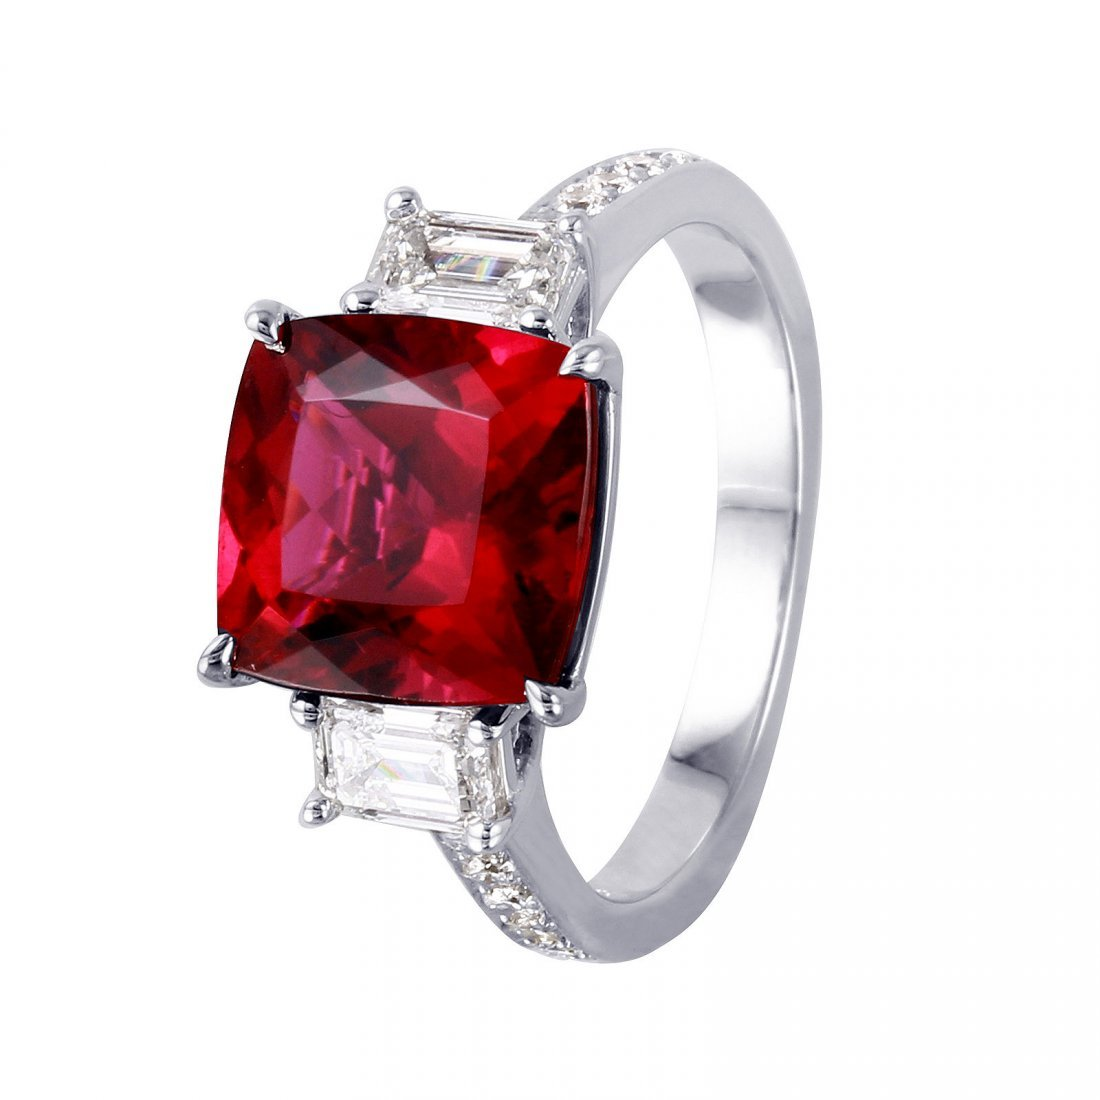 18KT White Gold Rubellite and Diamond Ring